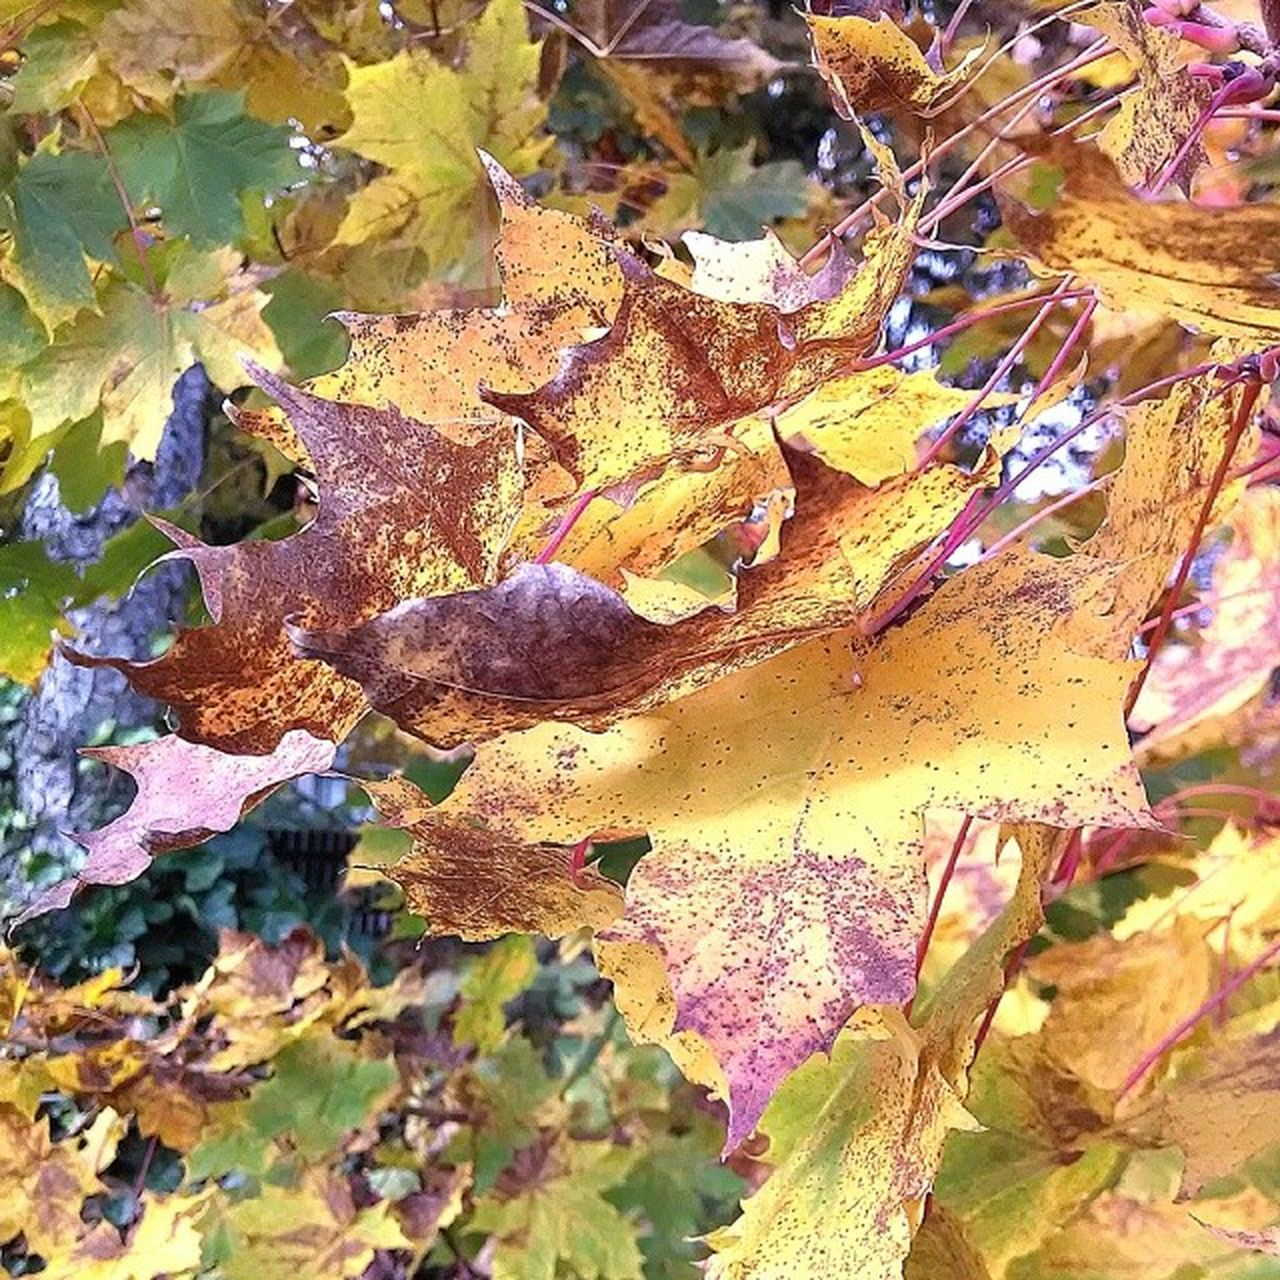 autumn, leaf, change, dry, nature, outdoors, day, maple leaf, close-up, no people, yellow, maple, beauty in nature